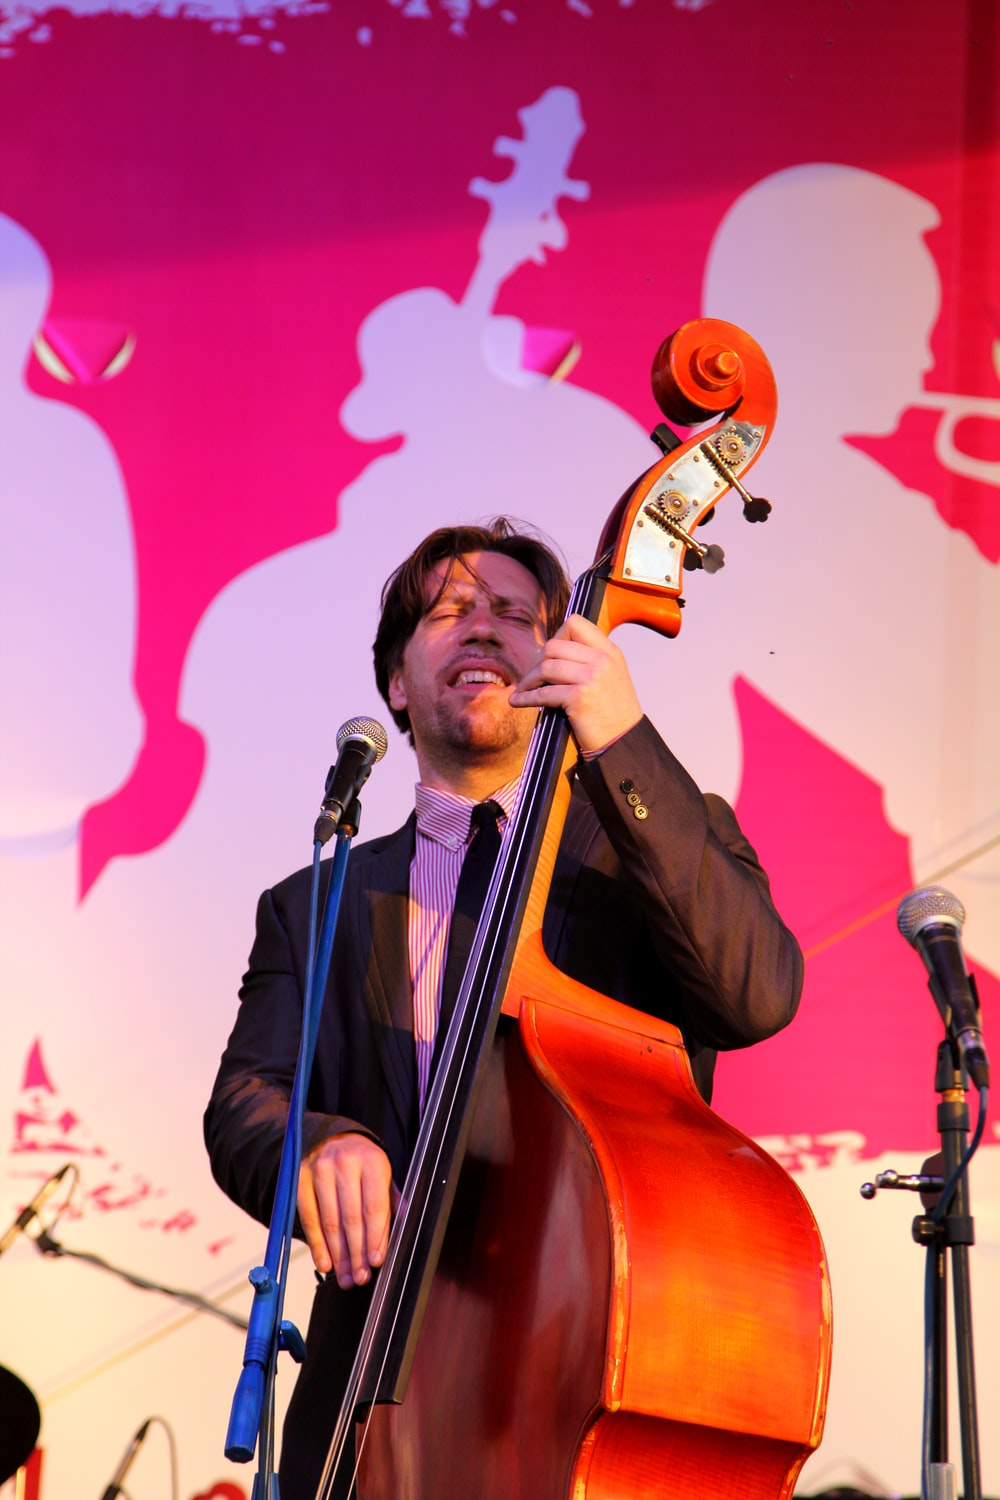 man playing cello in front of microphone